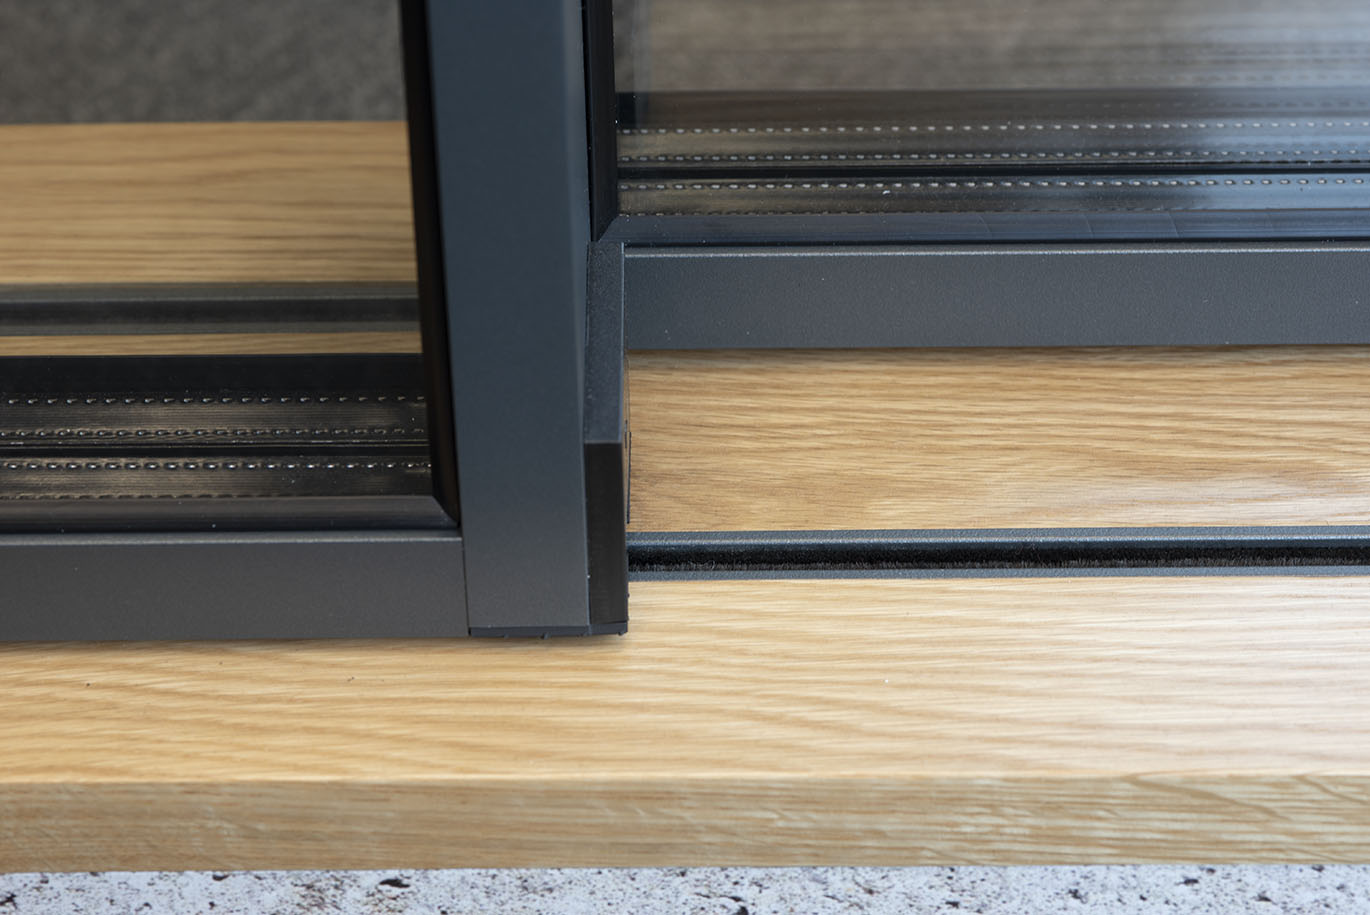 CorVision Plus Thermally Broken with Hidden Rail